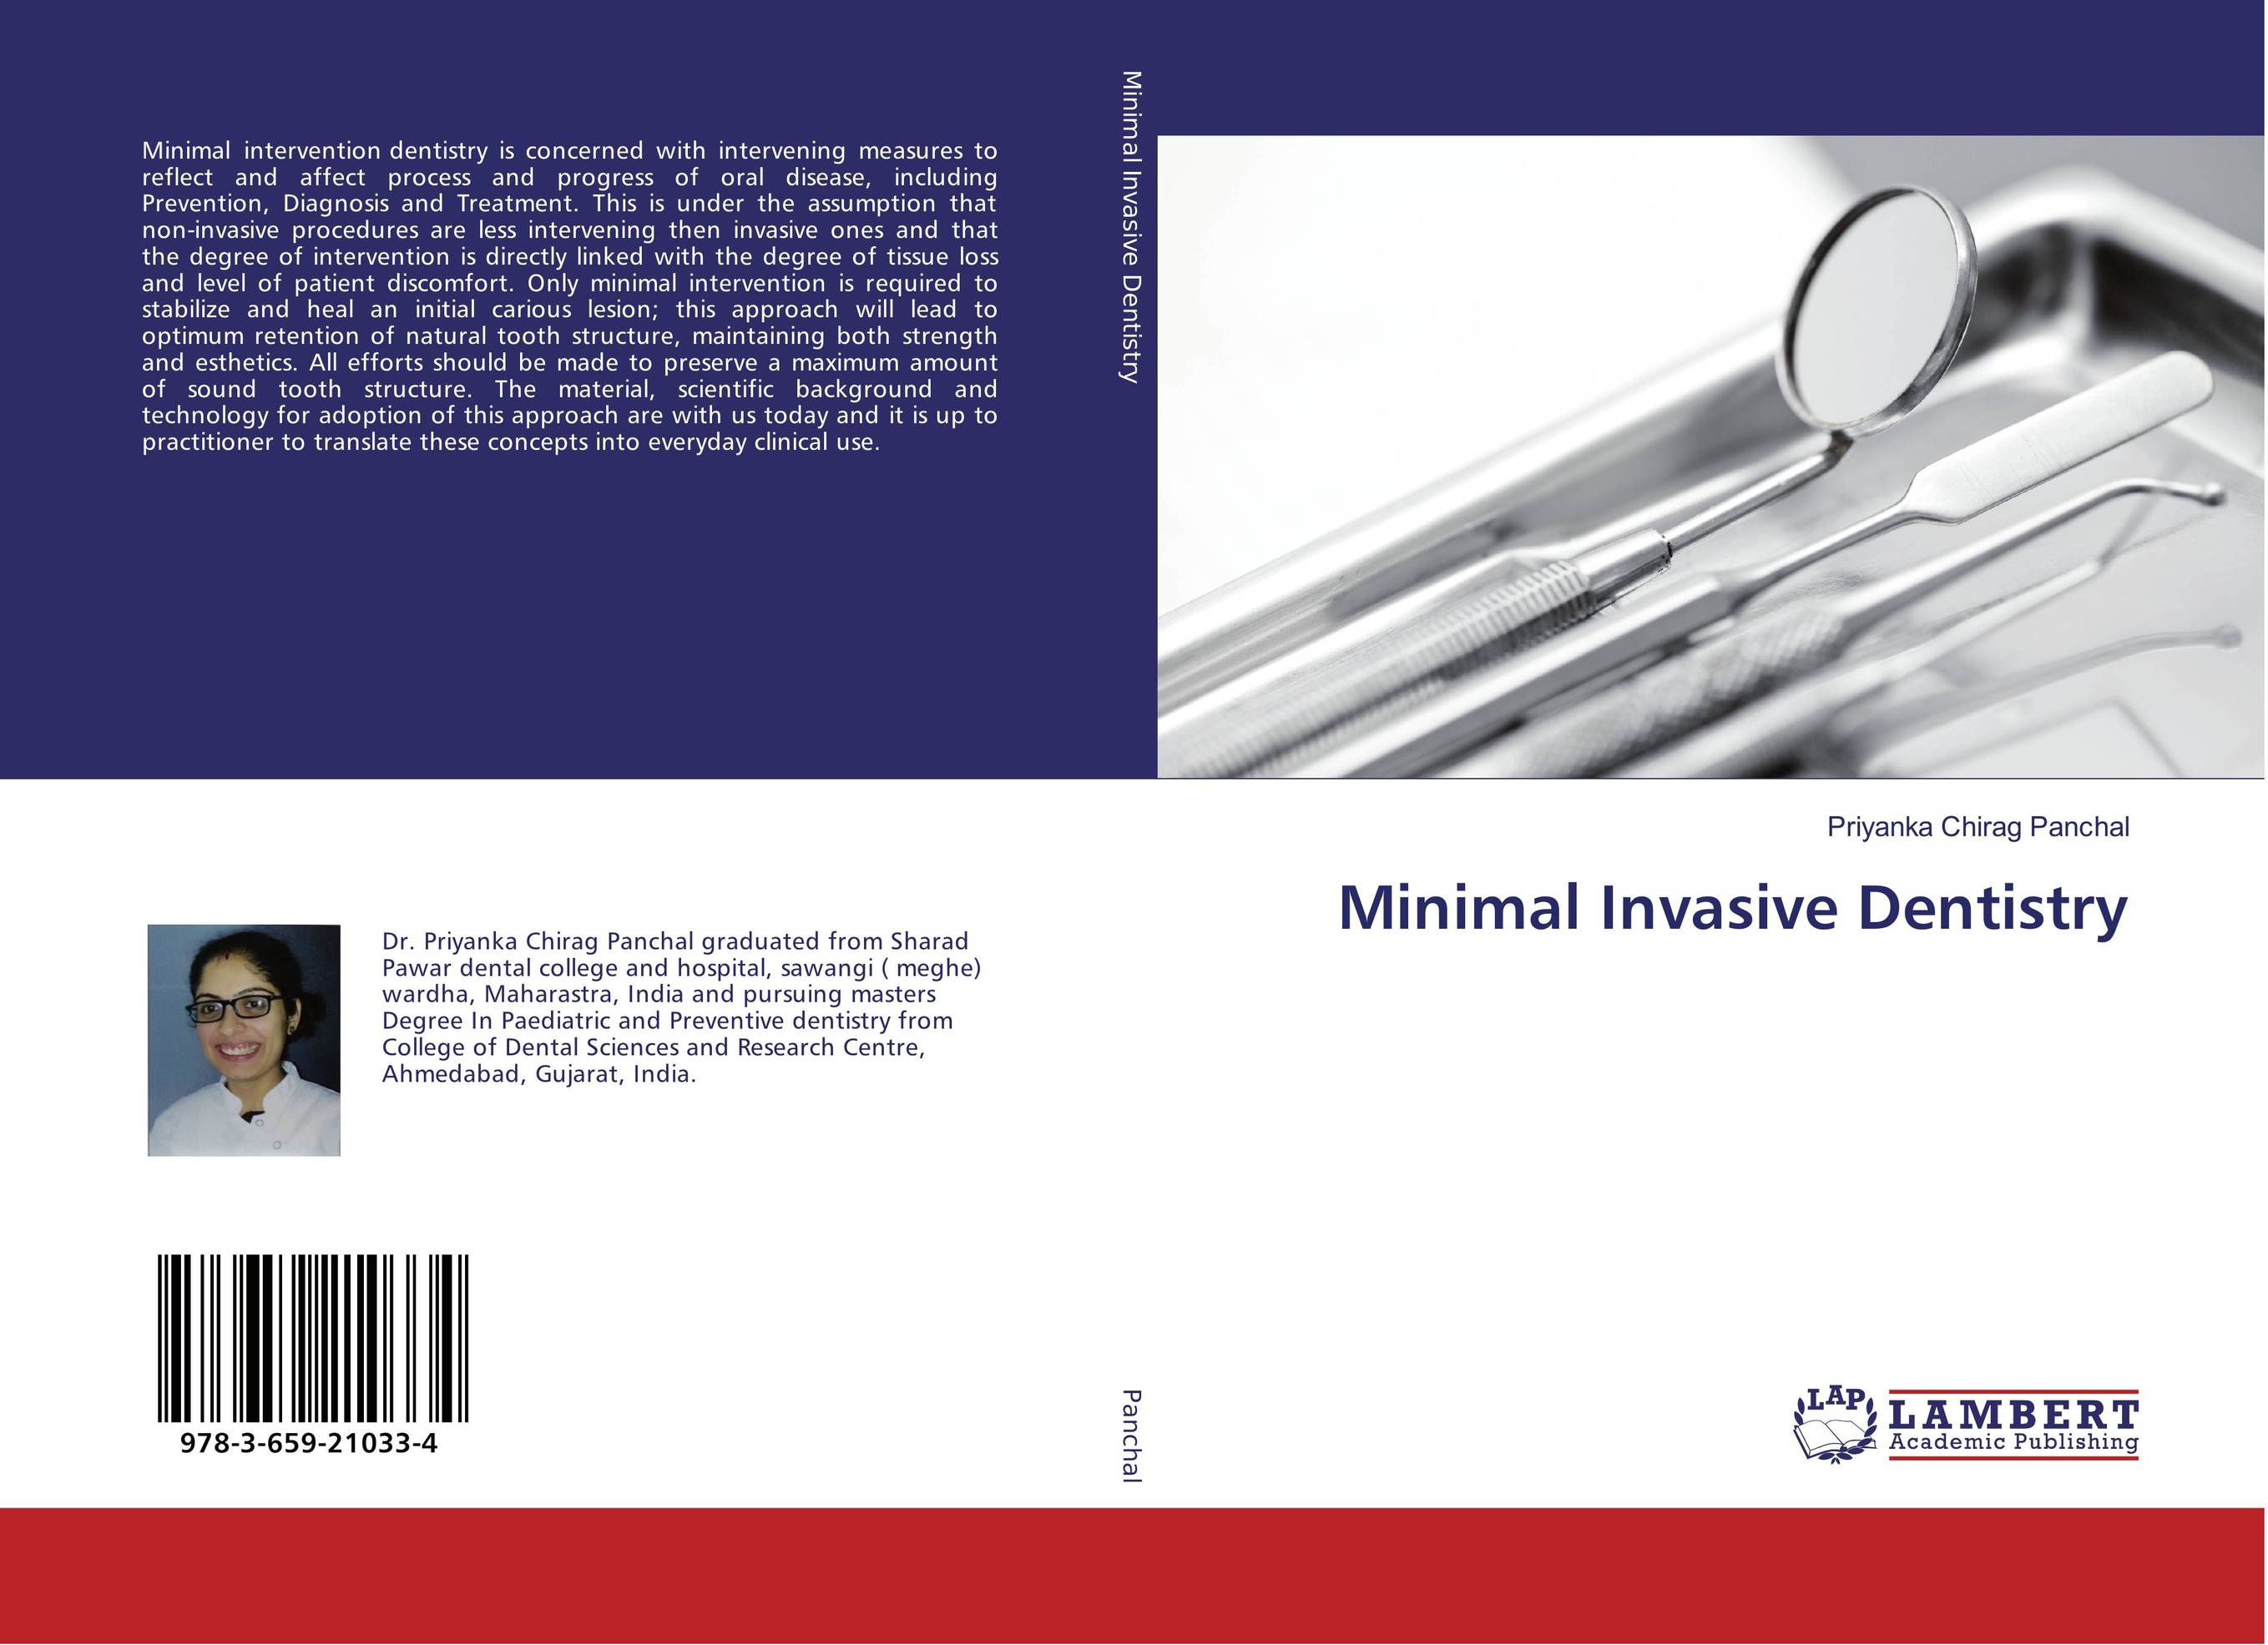 Minimal Invasive Dentistry esthetics in implant dentistry